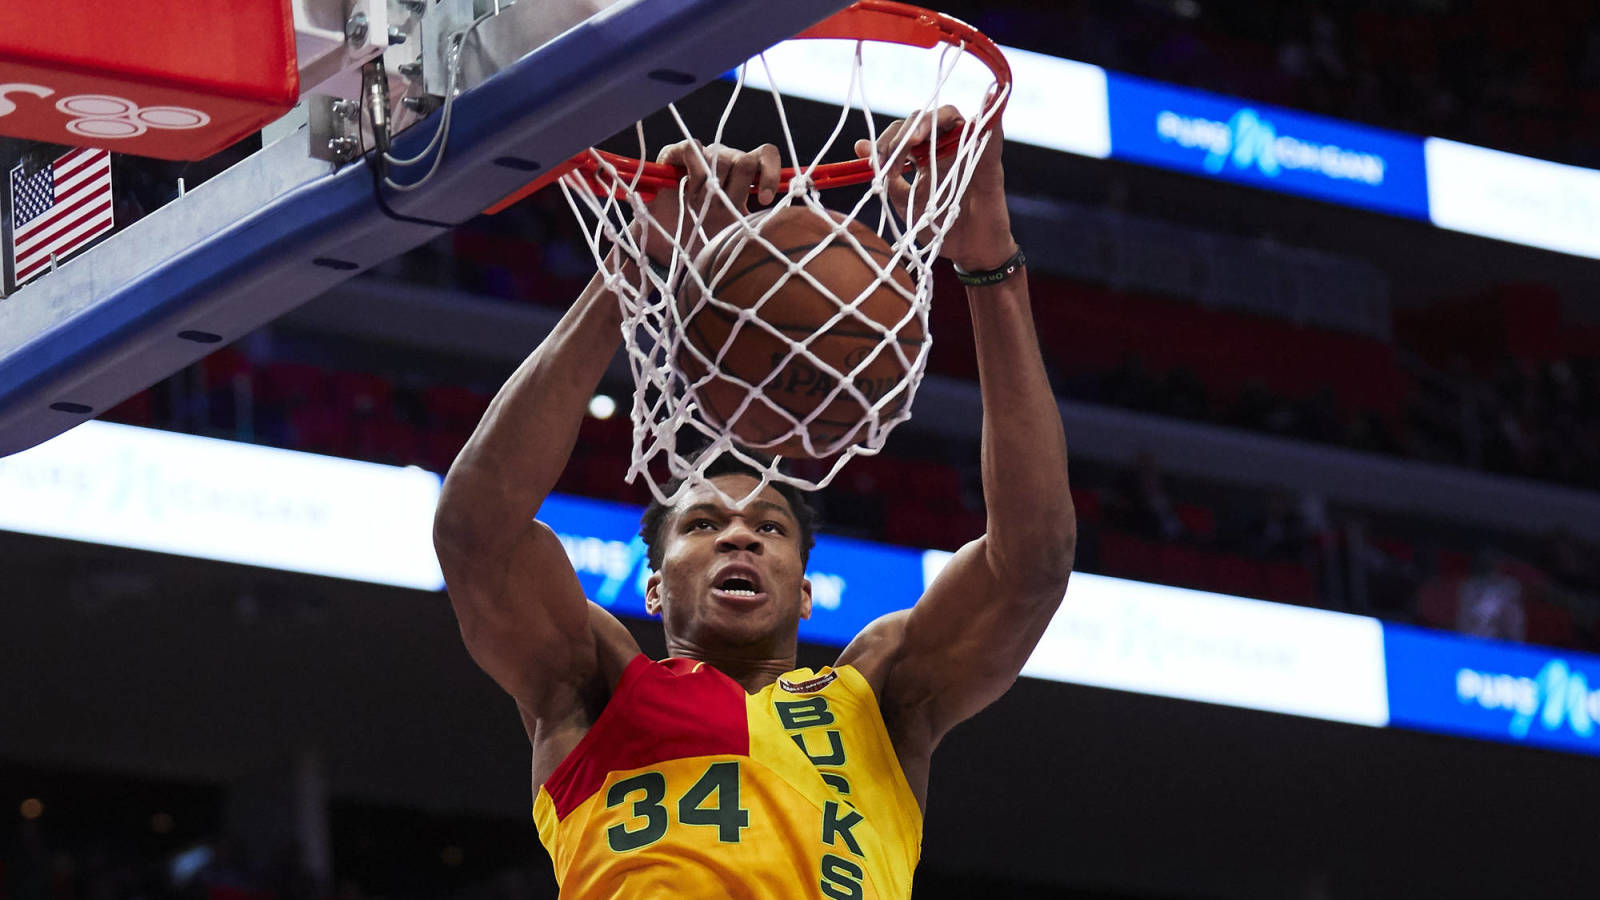 Watch Giannis Antetokounmpo Dunking All Over The Nets